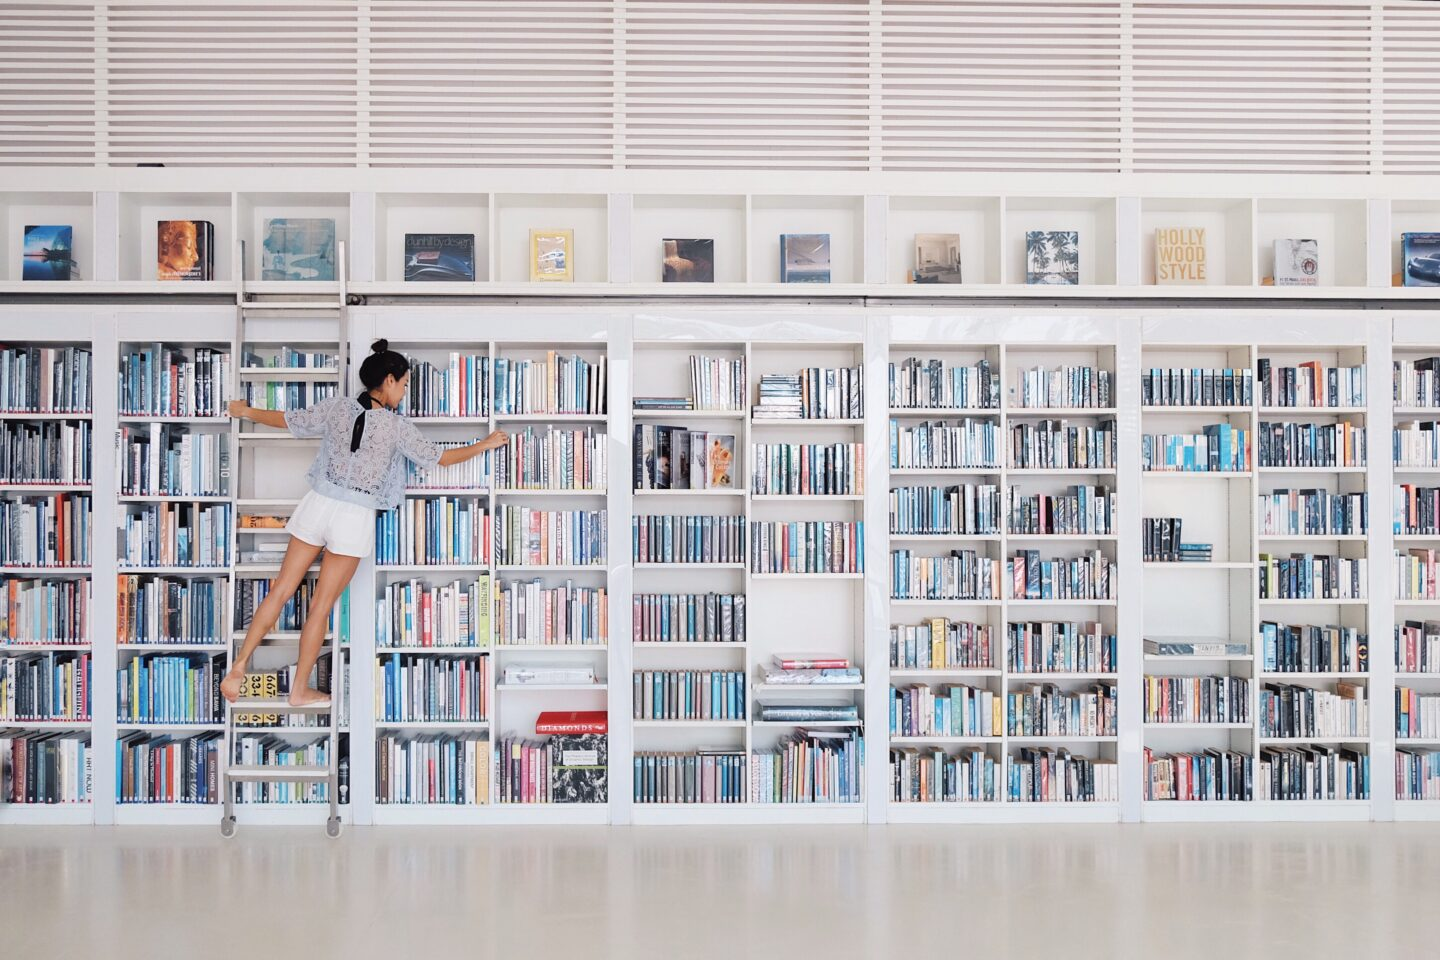 Best self help books for college students